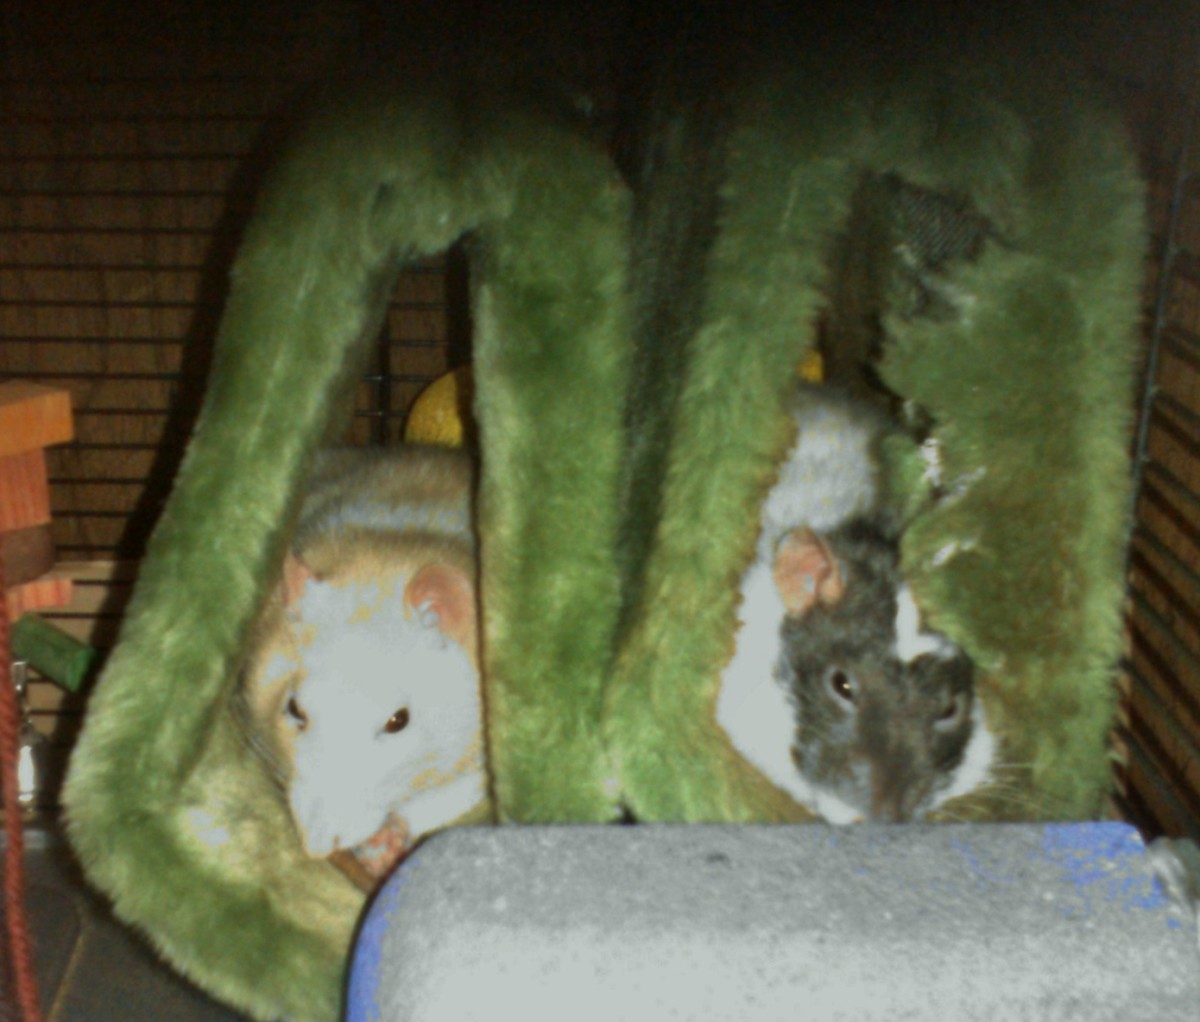 Quick rats are easiest to handle when sleepy, often in the afternoon.